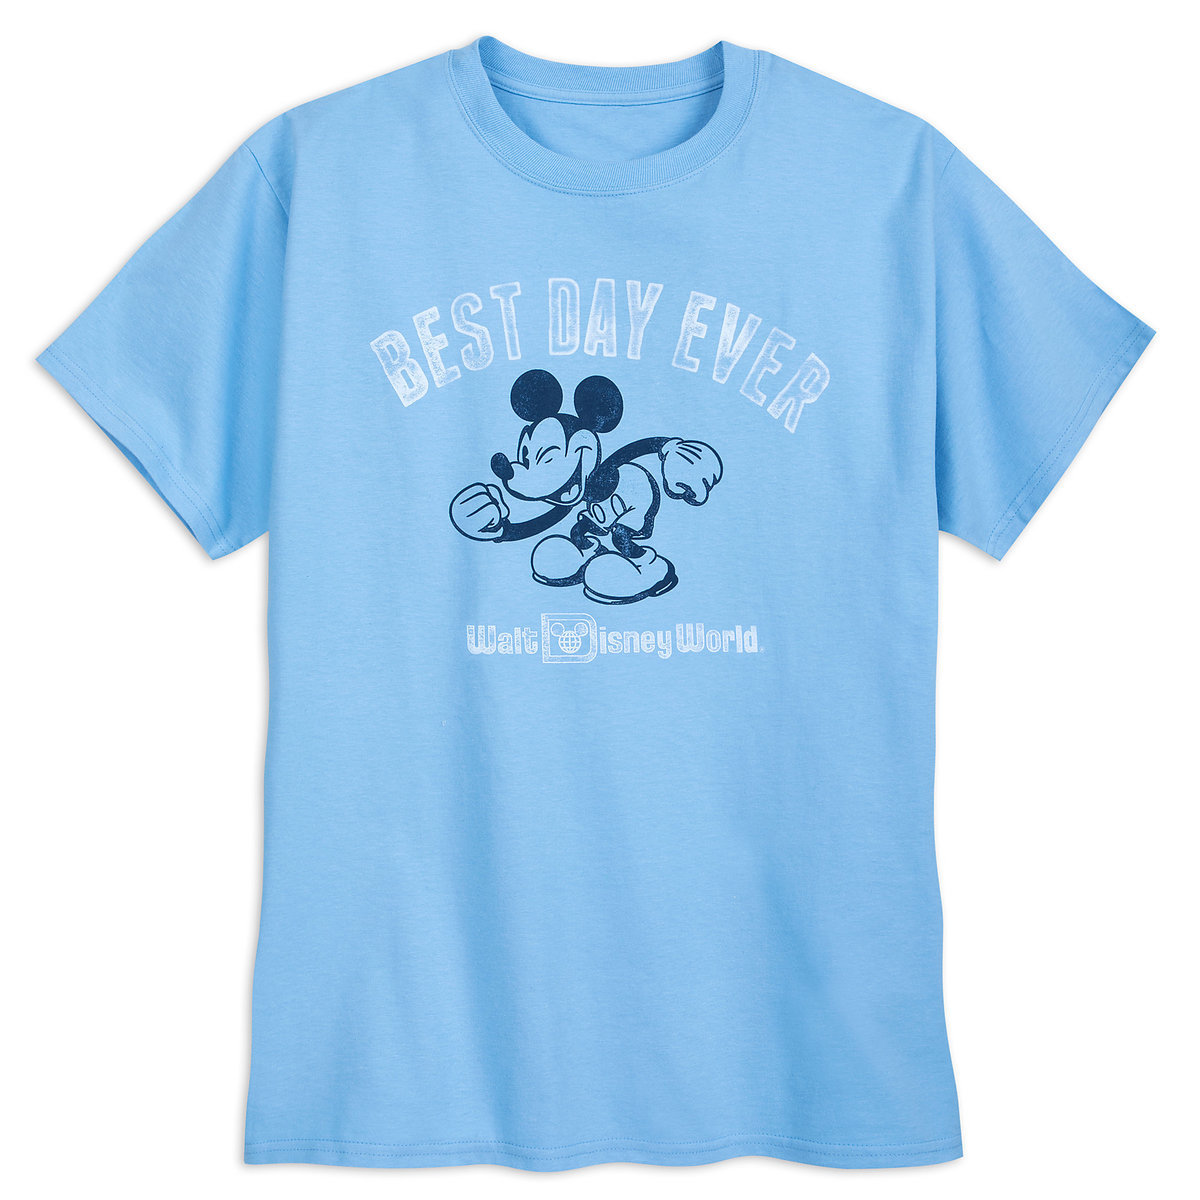 a26f5bbd4 Mickey Mouse ''Best Day Ever'' T-Shirt for Adults - Walt Disney ...